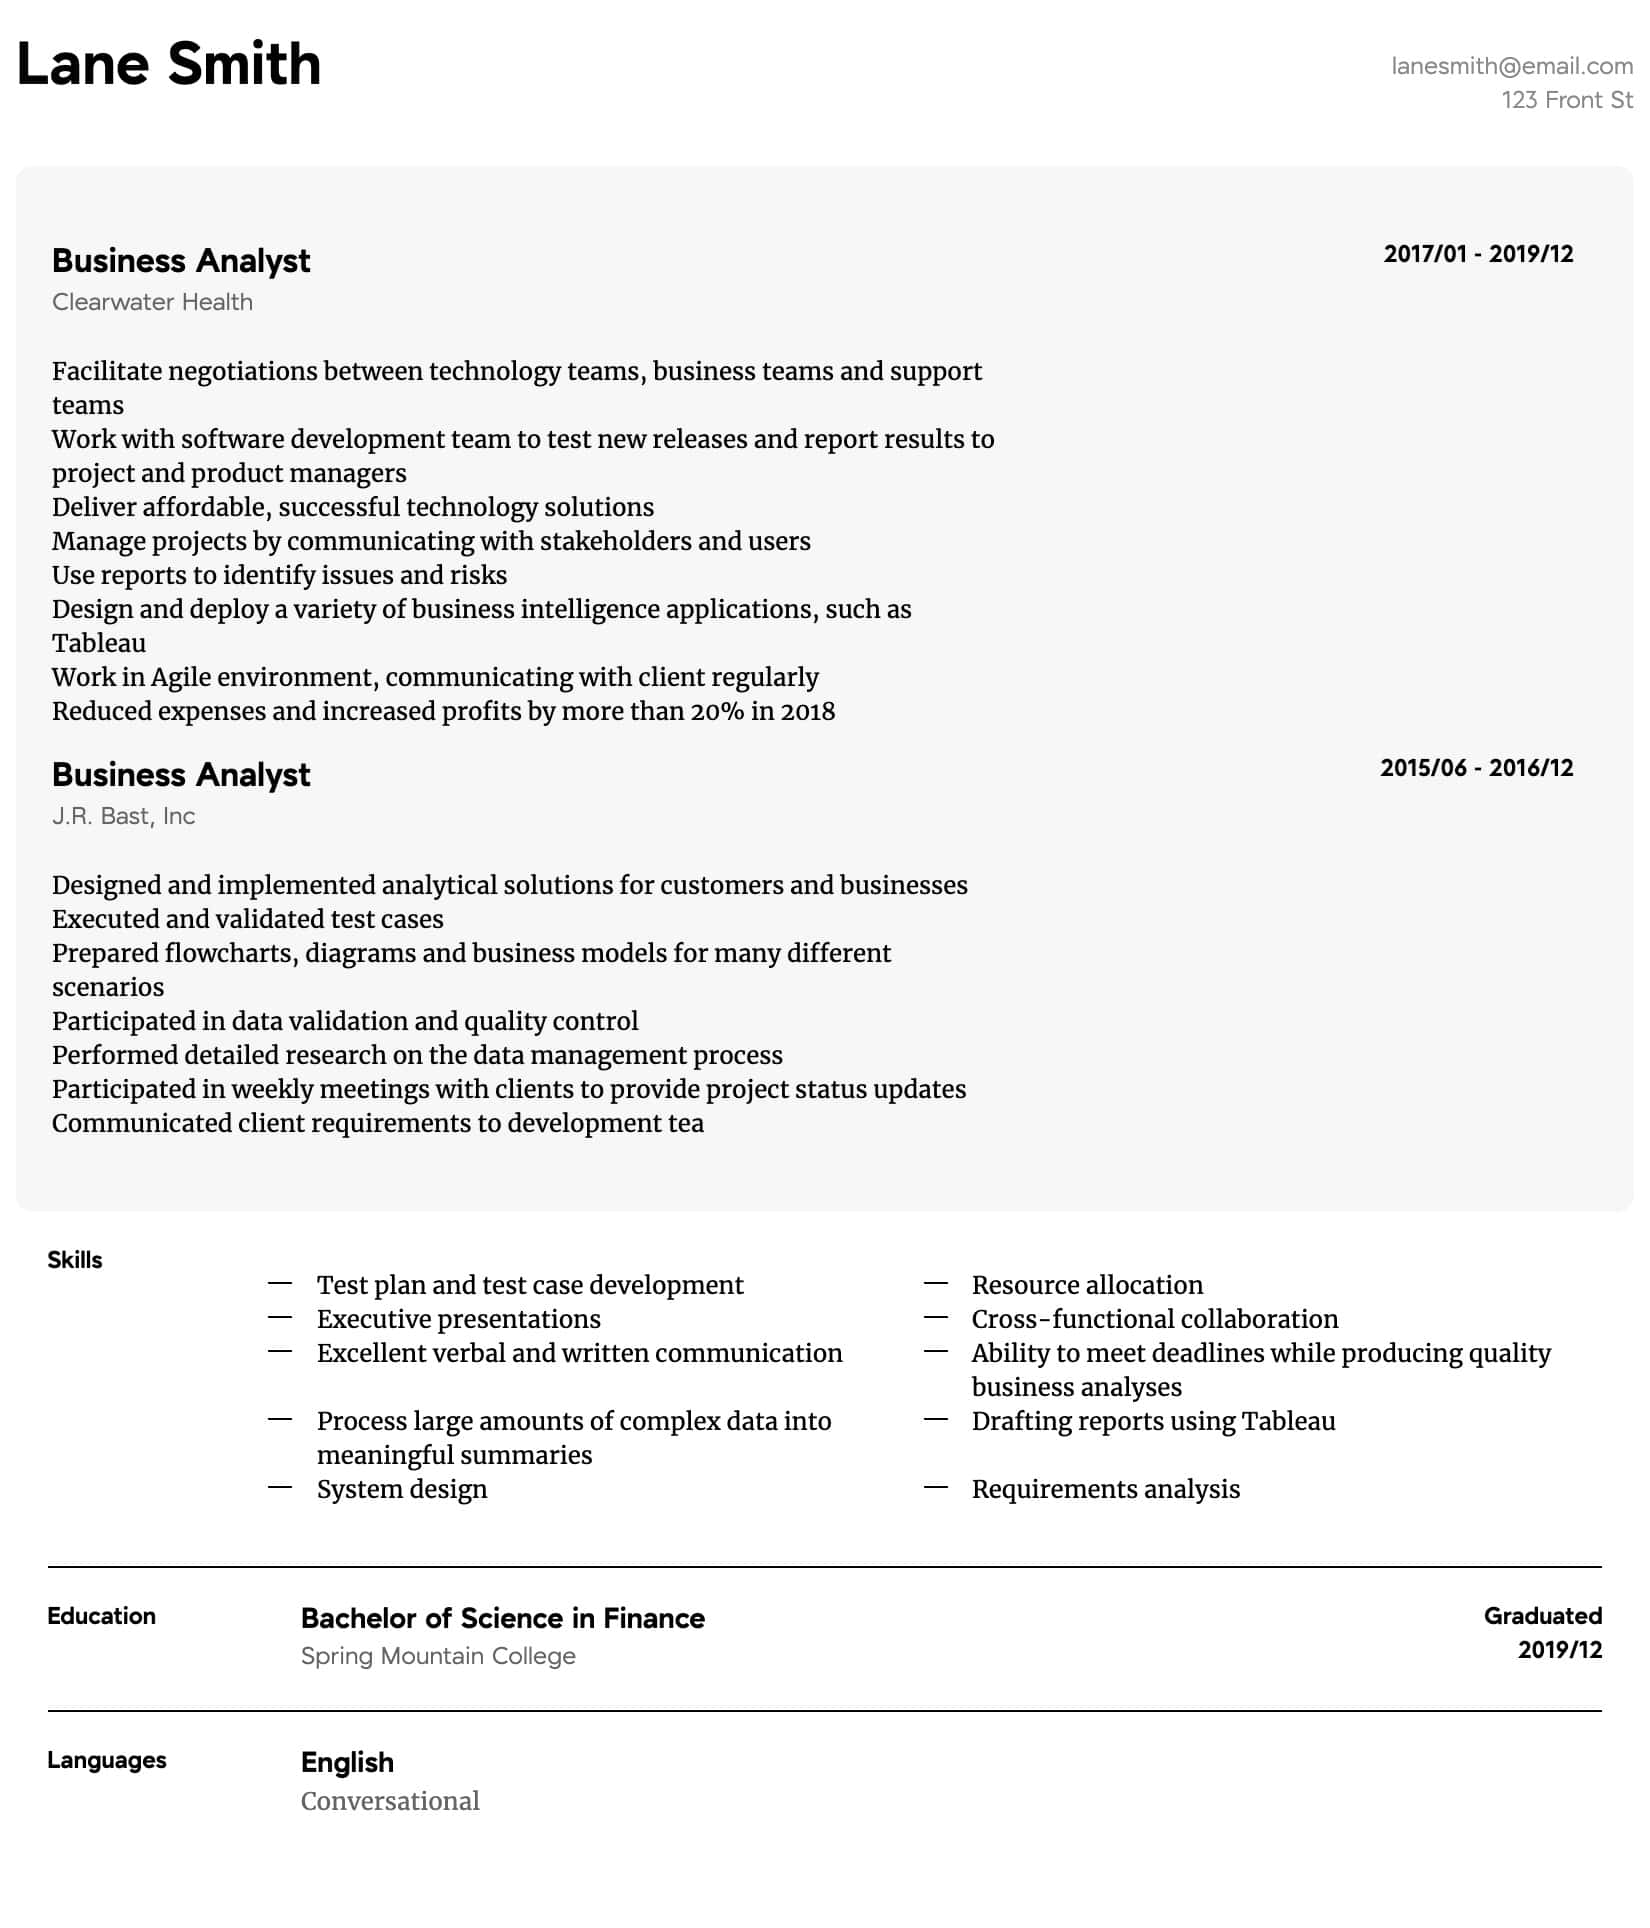 business analyst resume samples all experience levels intermediate marketing consultant Resume Business Analyst Resume Download